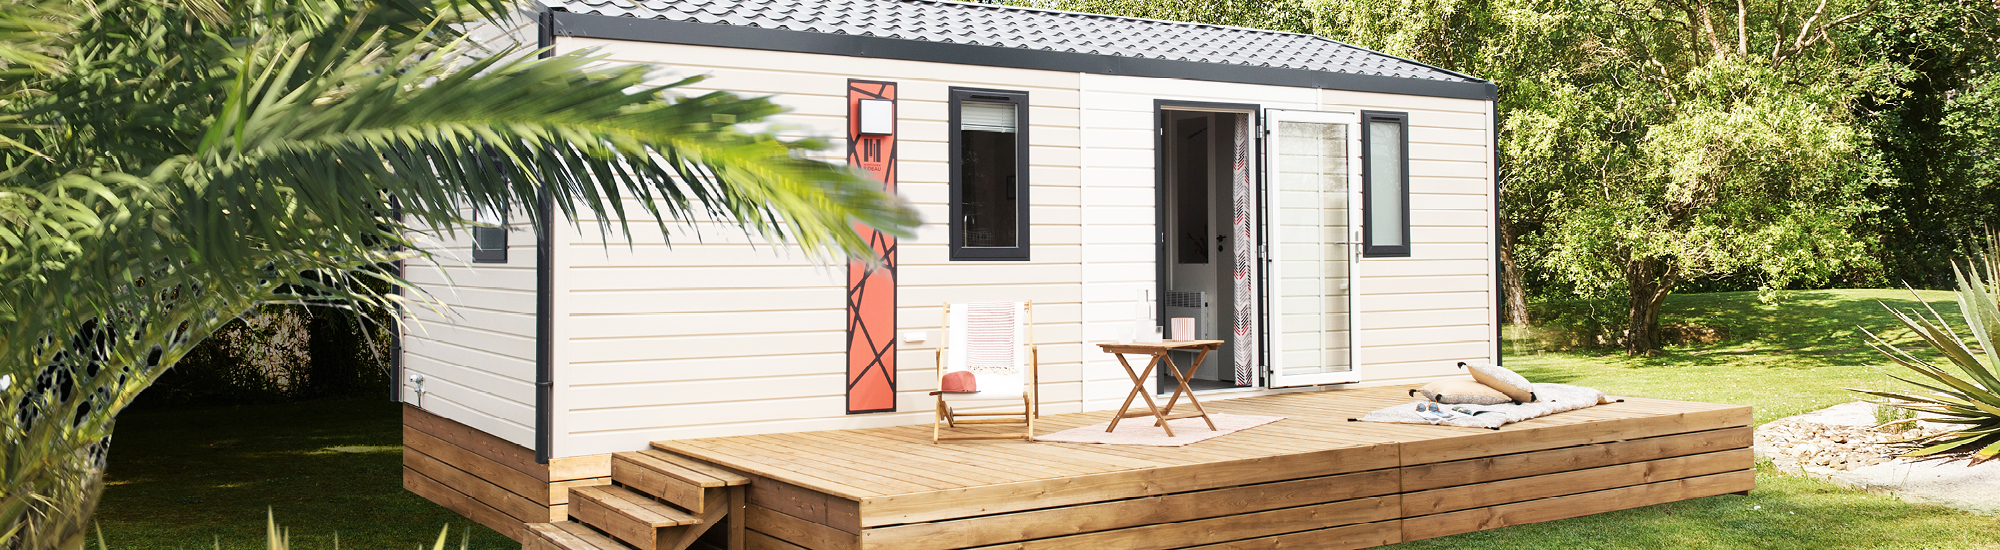 Mobil-homes 2 chambres IBIZAduo - mobil-home Rideau